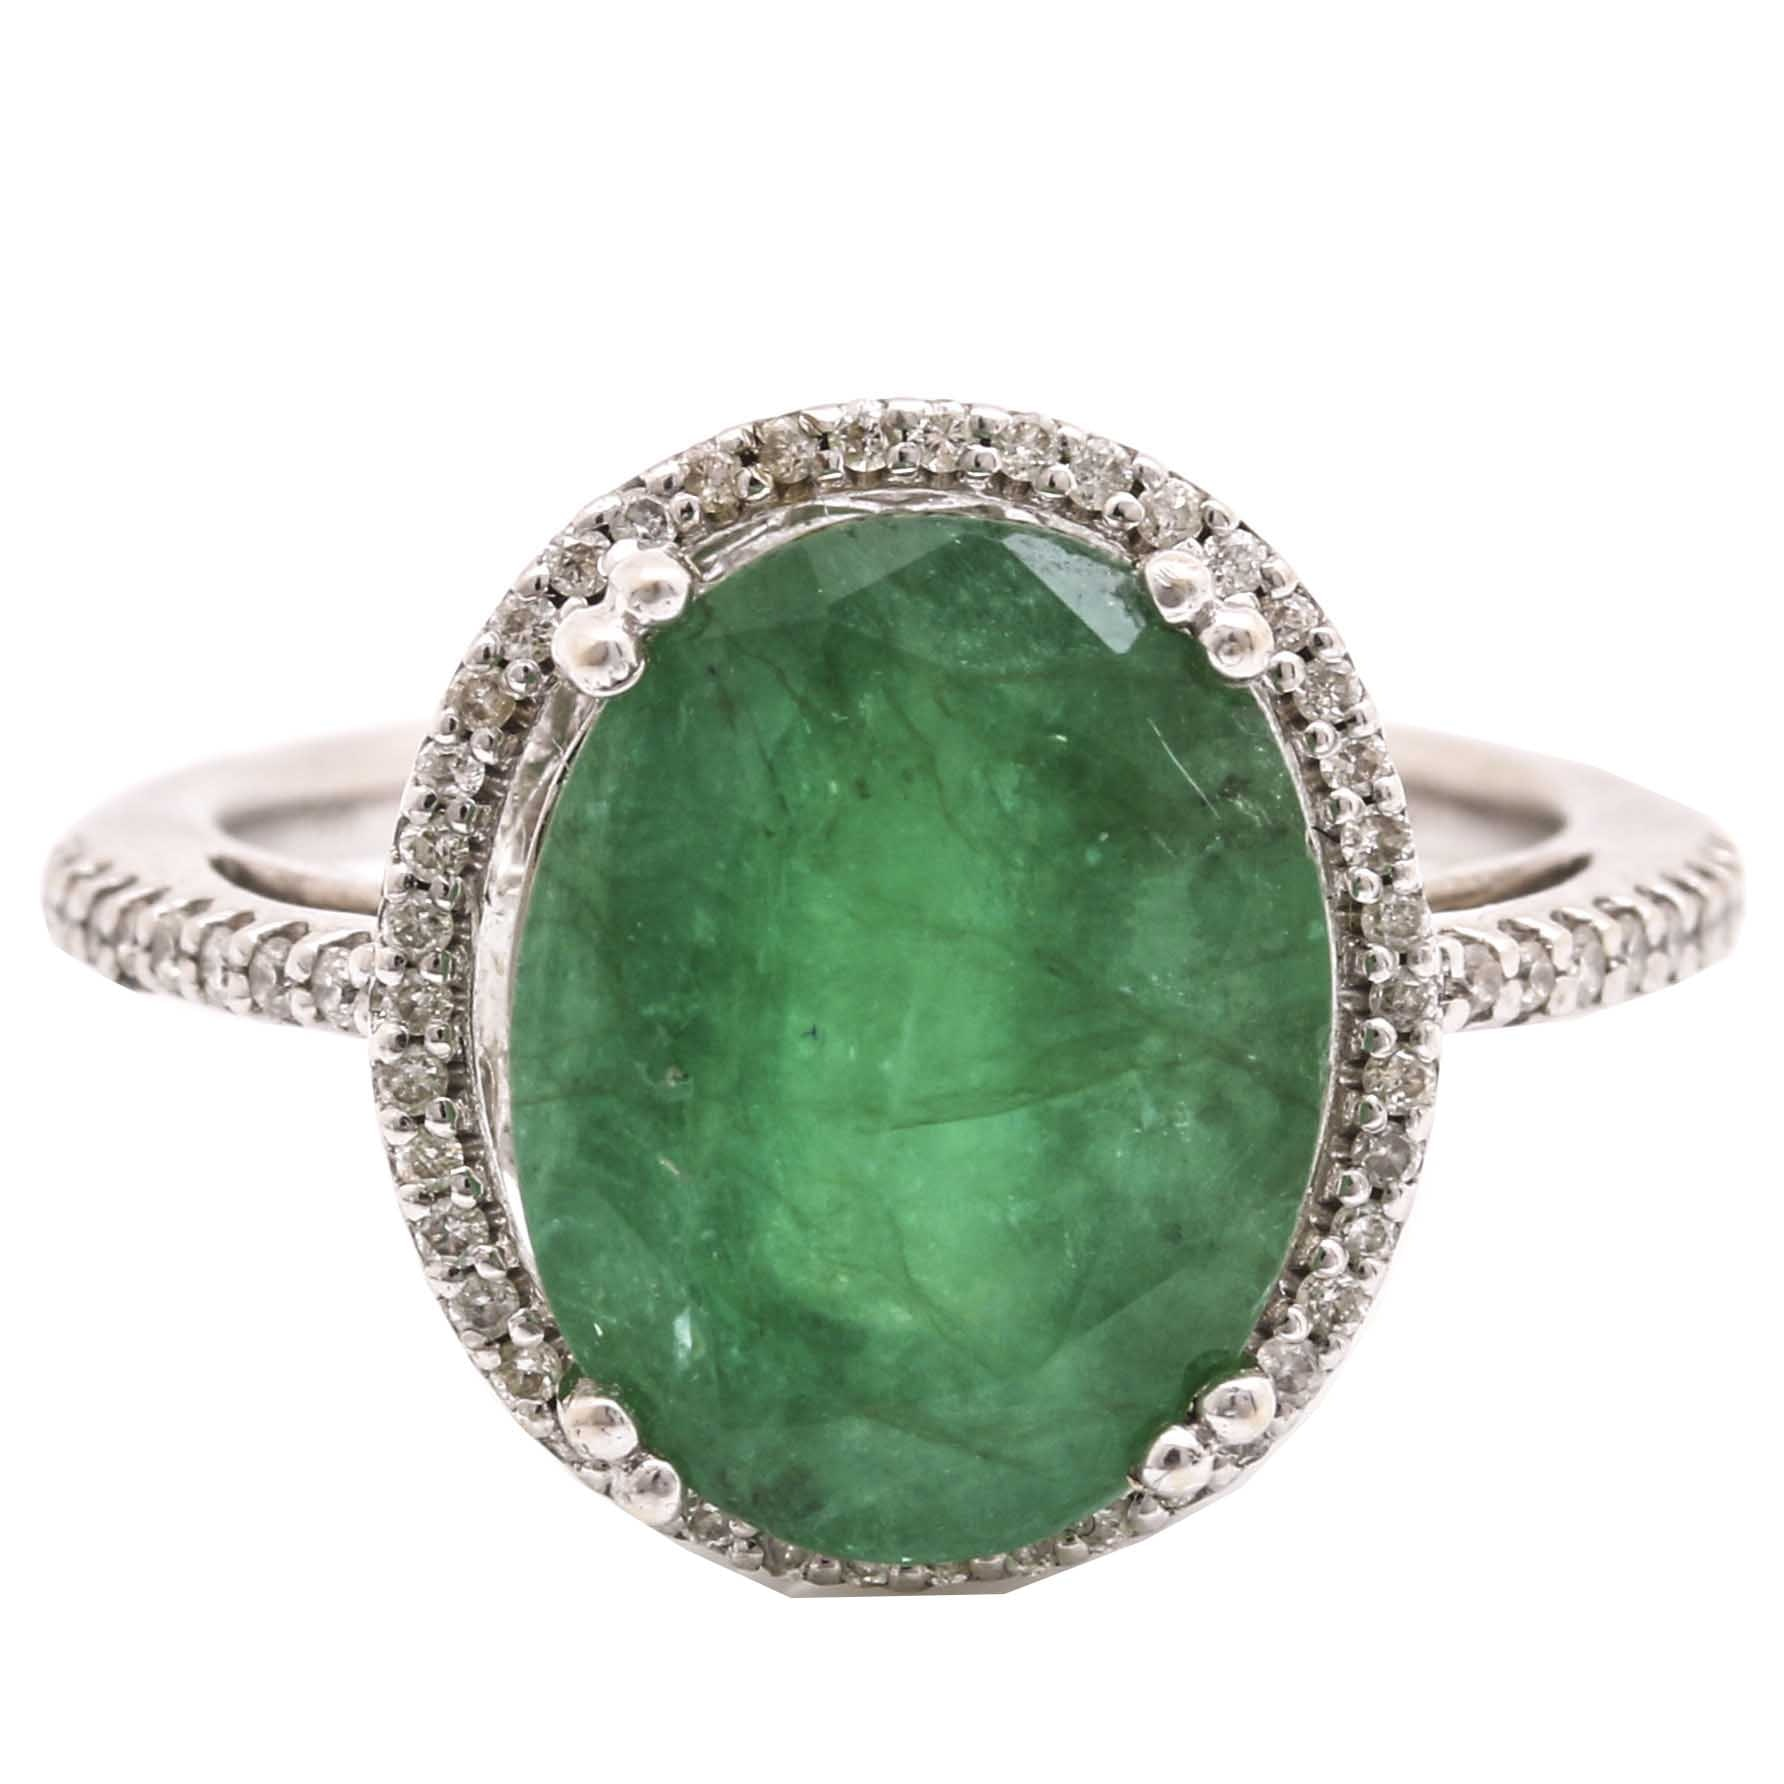 14K White Gold 5.18 CT Emerald and Diamond Ring